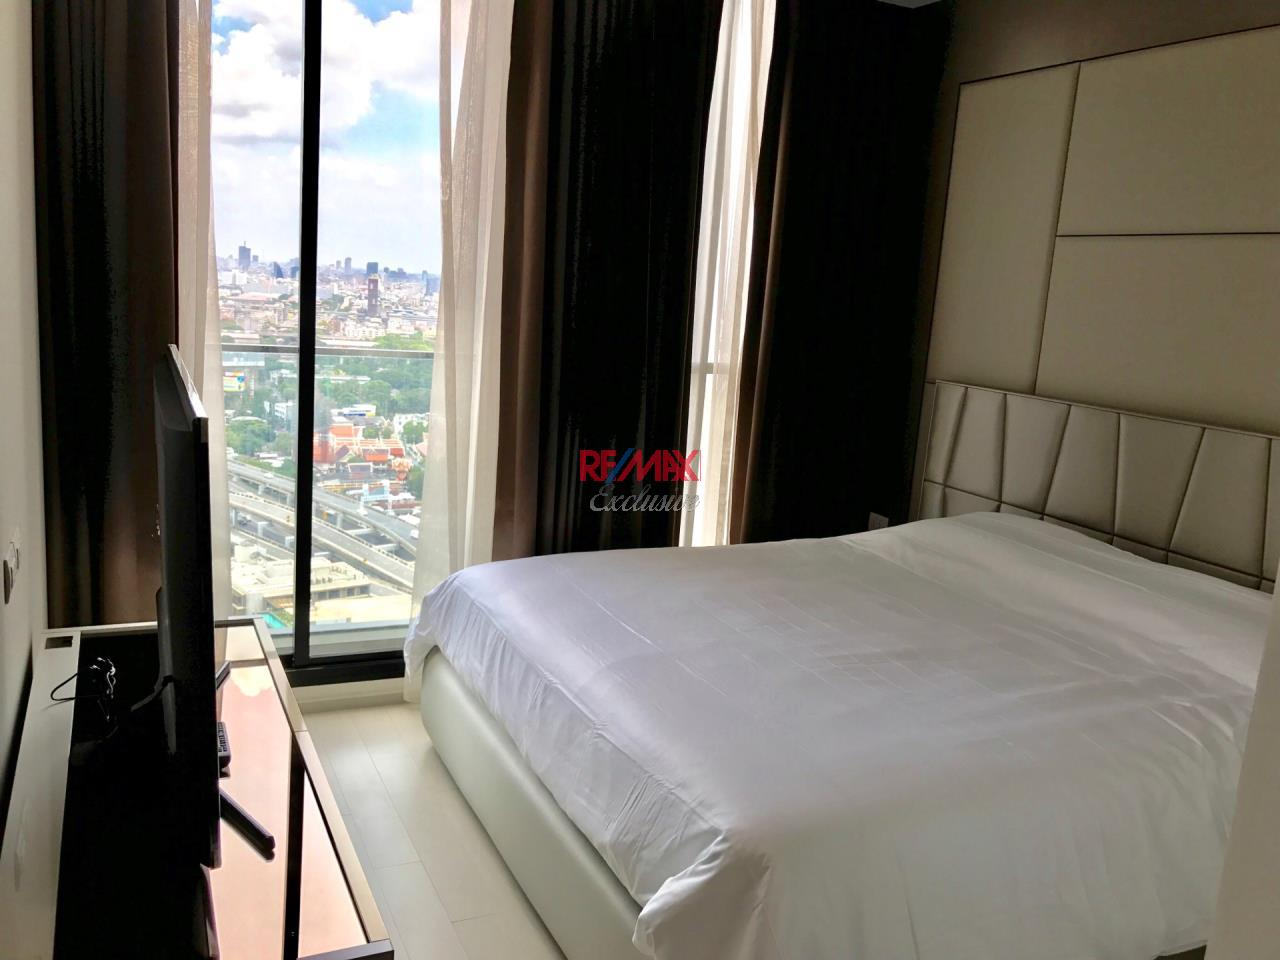 RE/MAX Exclusive Agency's Noble Ploenchit 2 Bedrooms, 2 Bathrooms, 85 Sqm., For Rent and Sale!! 8